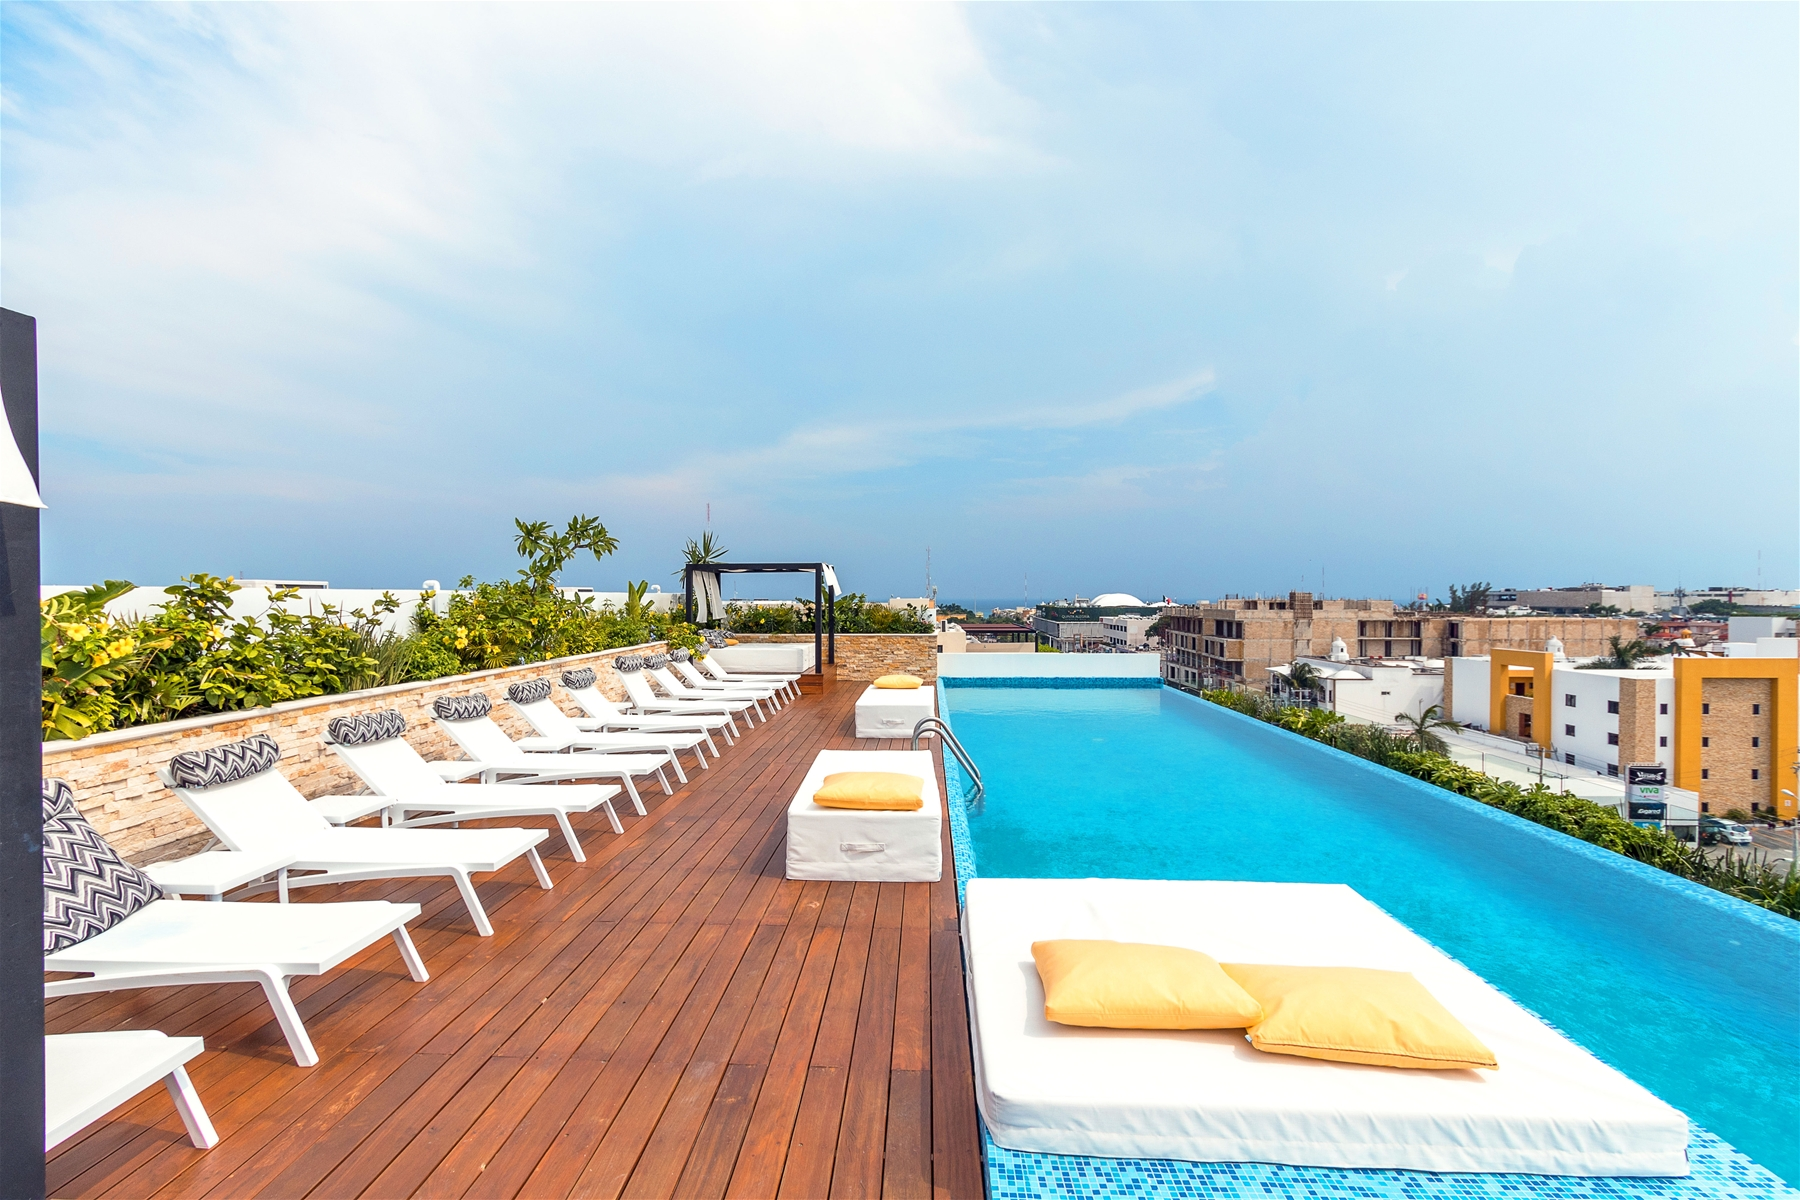 Menesse the City Playa del Carmen Condo Home For Sale Real Estate to Buy